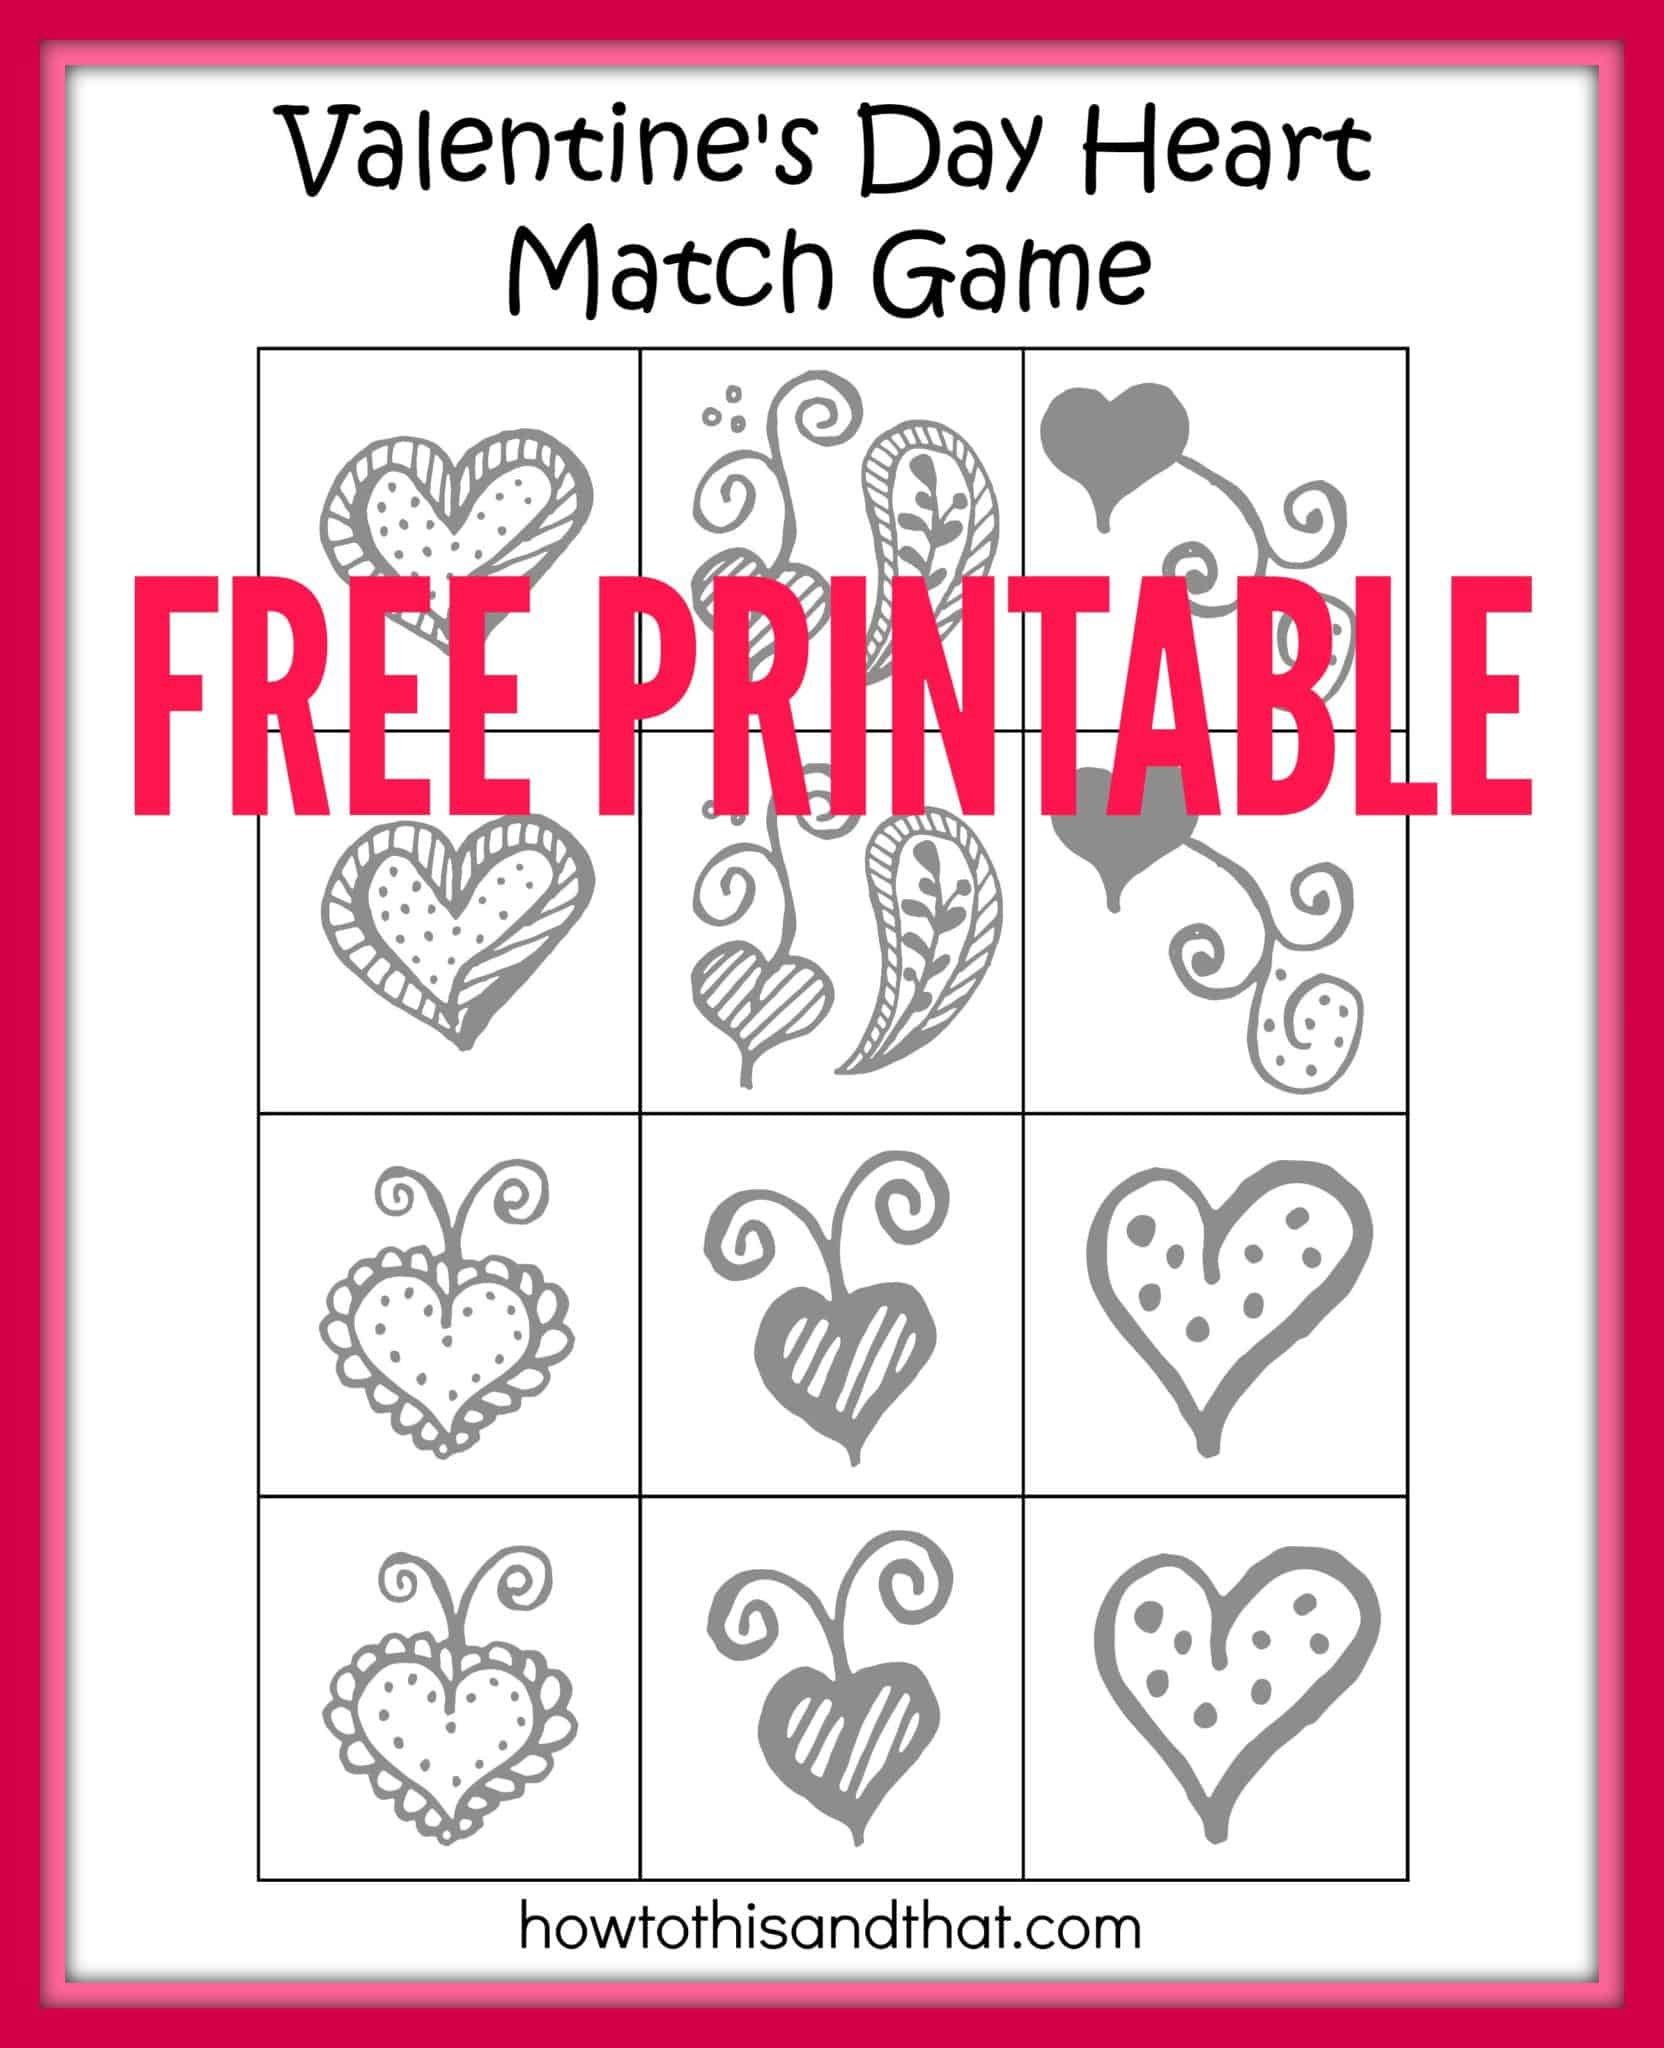 Free Printable Valentine's Day Heart Matching Game 1